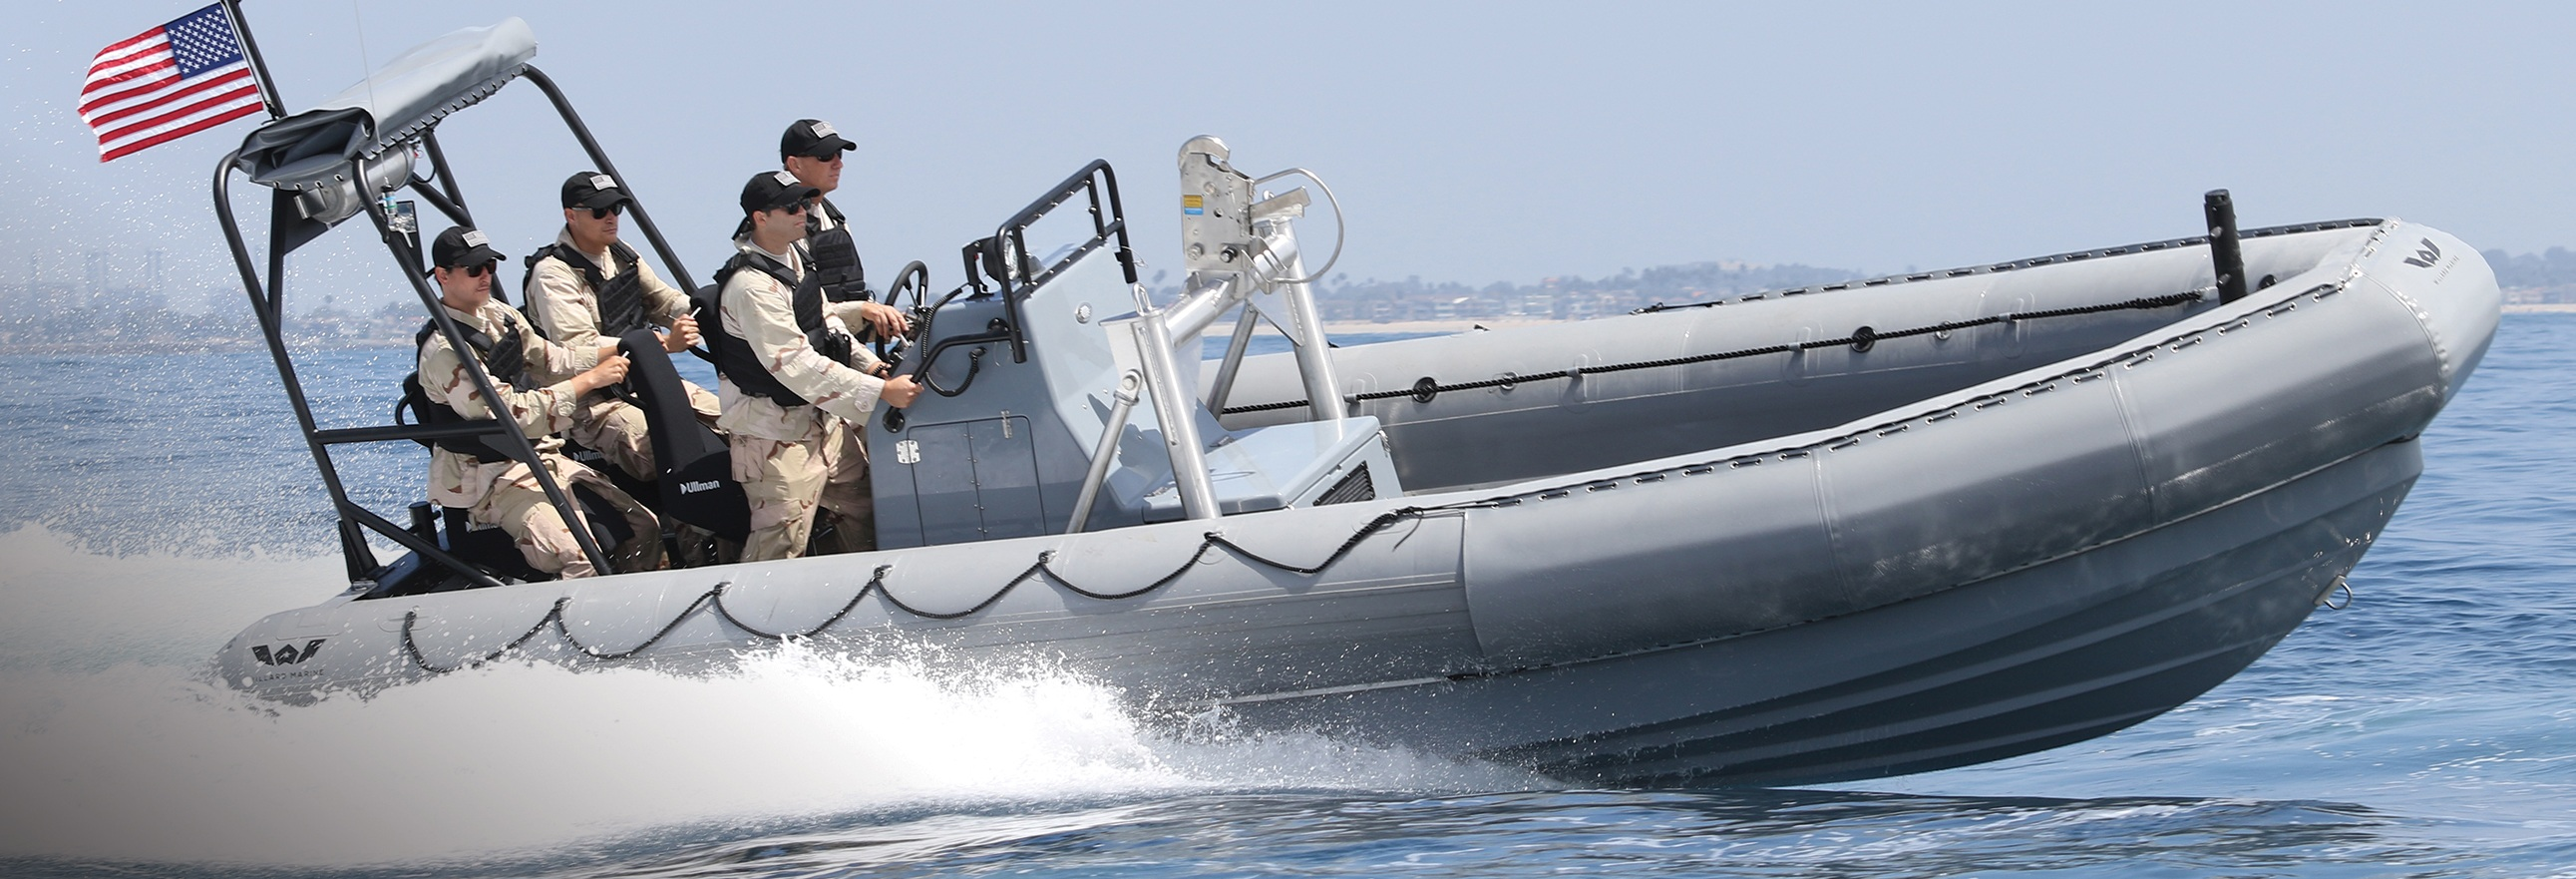 78 Meter Length Inflatable Boat